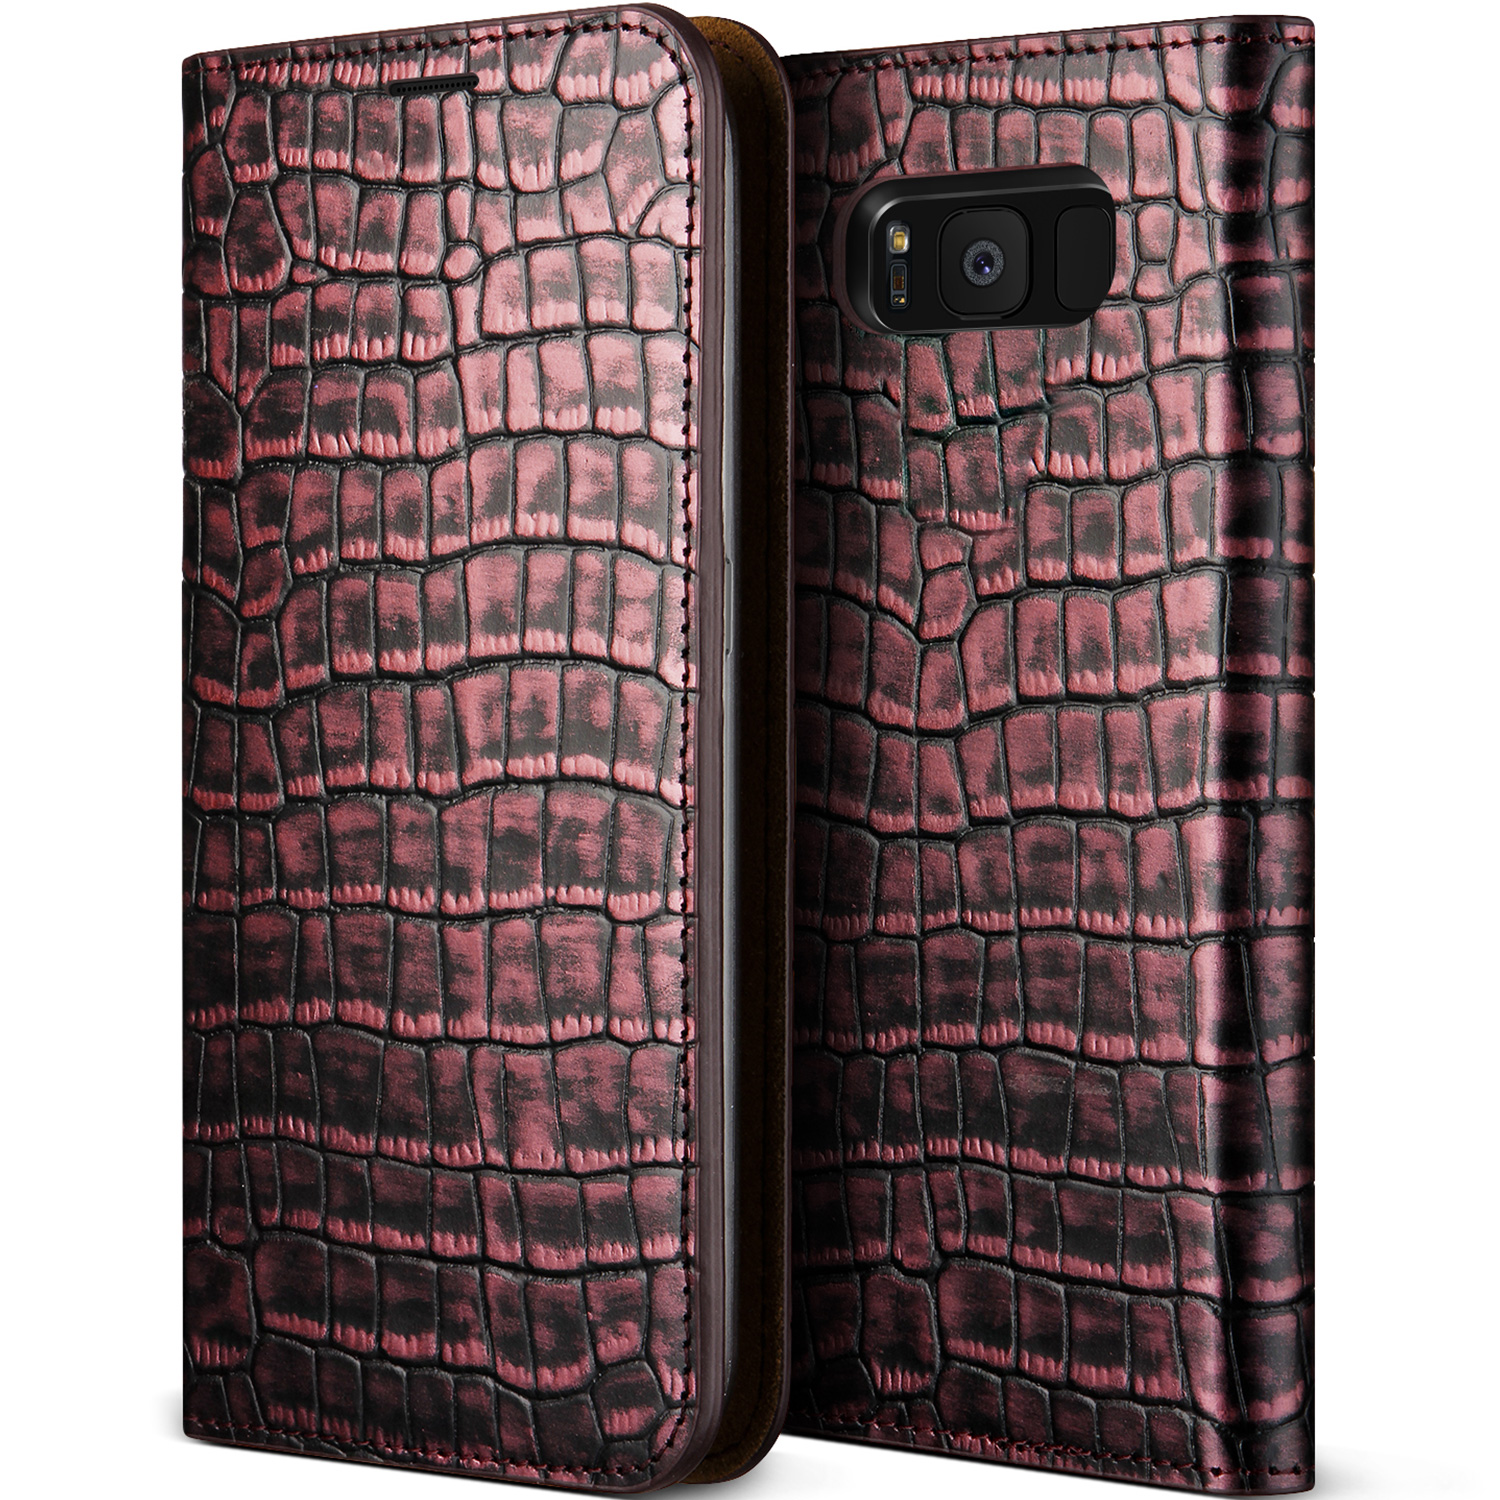 Samsung Galaxy S8 Case Cover | Slim Leather Wallet | VRS Design Genuine Leather Croco Diary for Samsung Galaxy S8